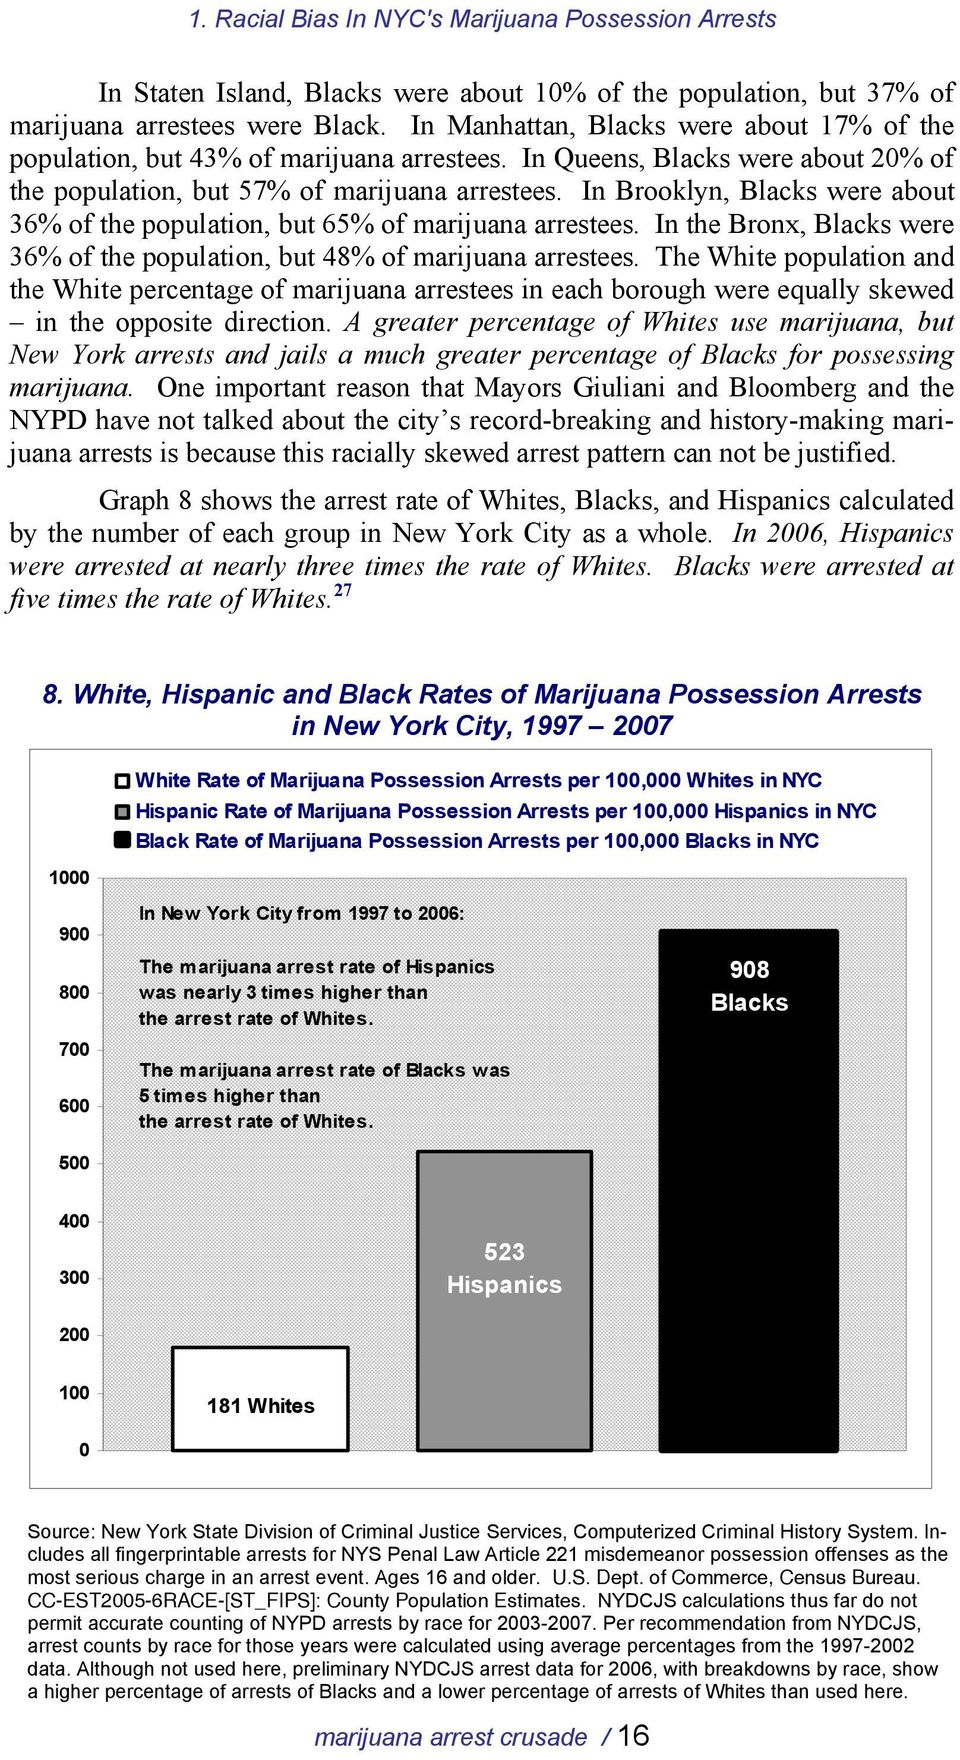 In Brooklyn, Blacks were about 36% of the population, but 65% of marijuana arrestees. In the Bronx, Blacks were 36% of the population, but 48% of marijuana arrestees.